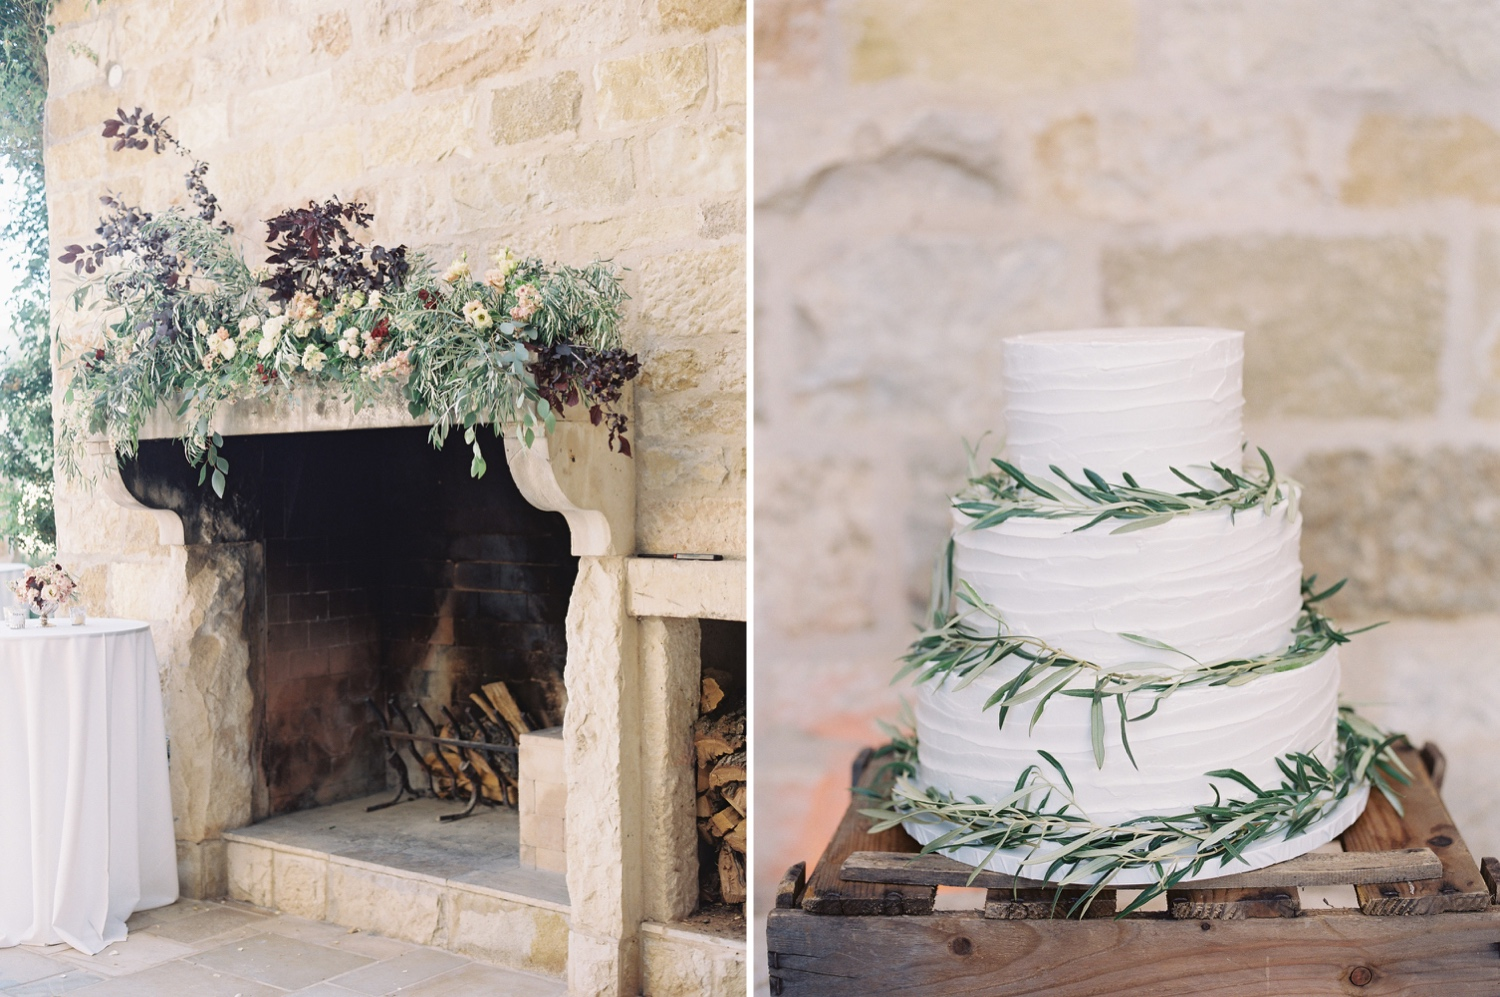 Villa fireplace with floral display on mantel and simple and elegant wedding cake with rosemary sprigs